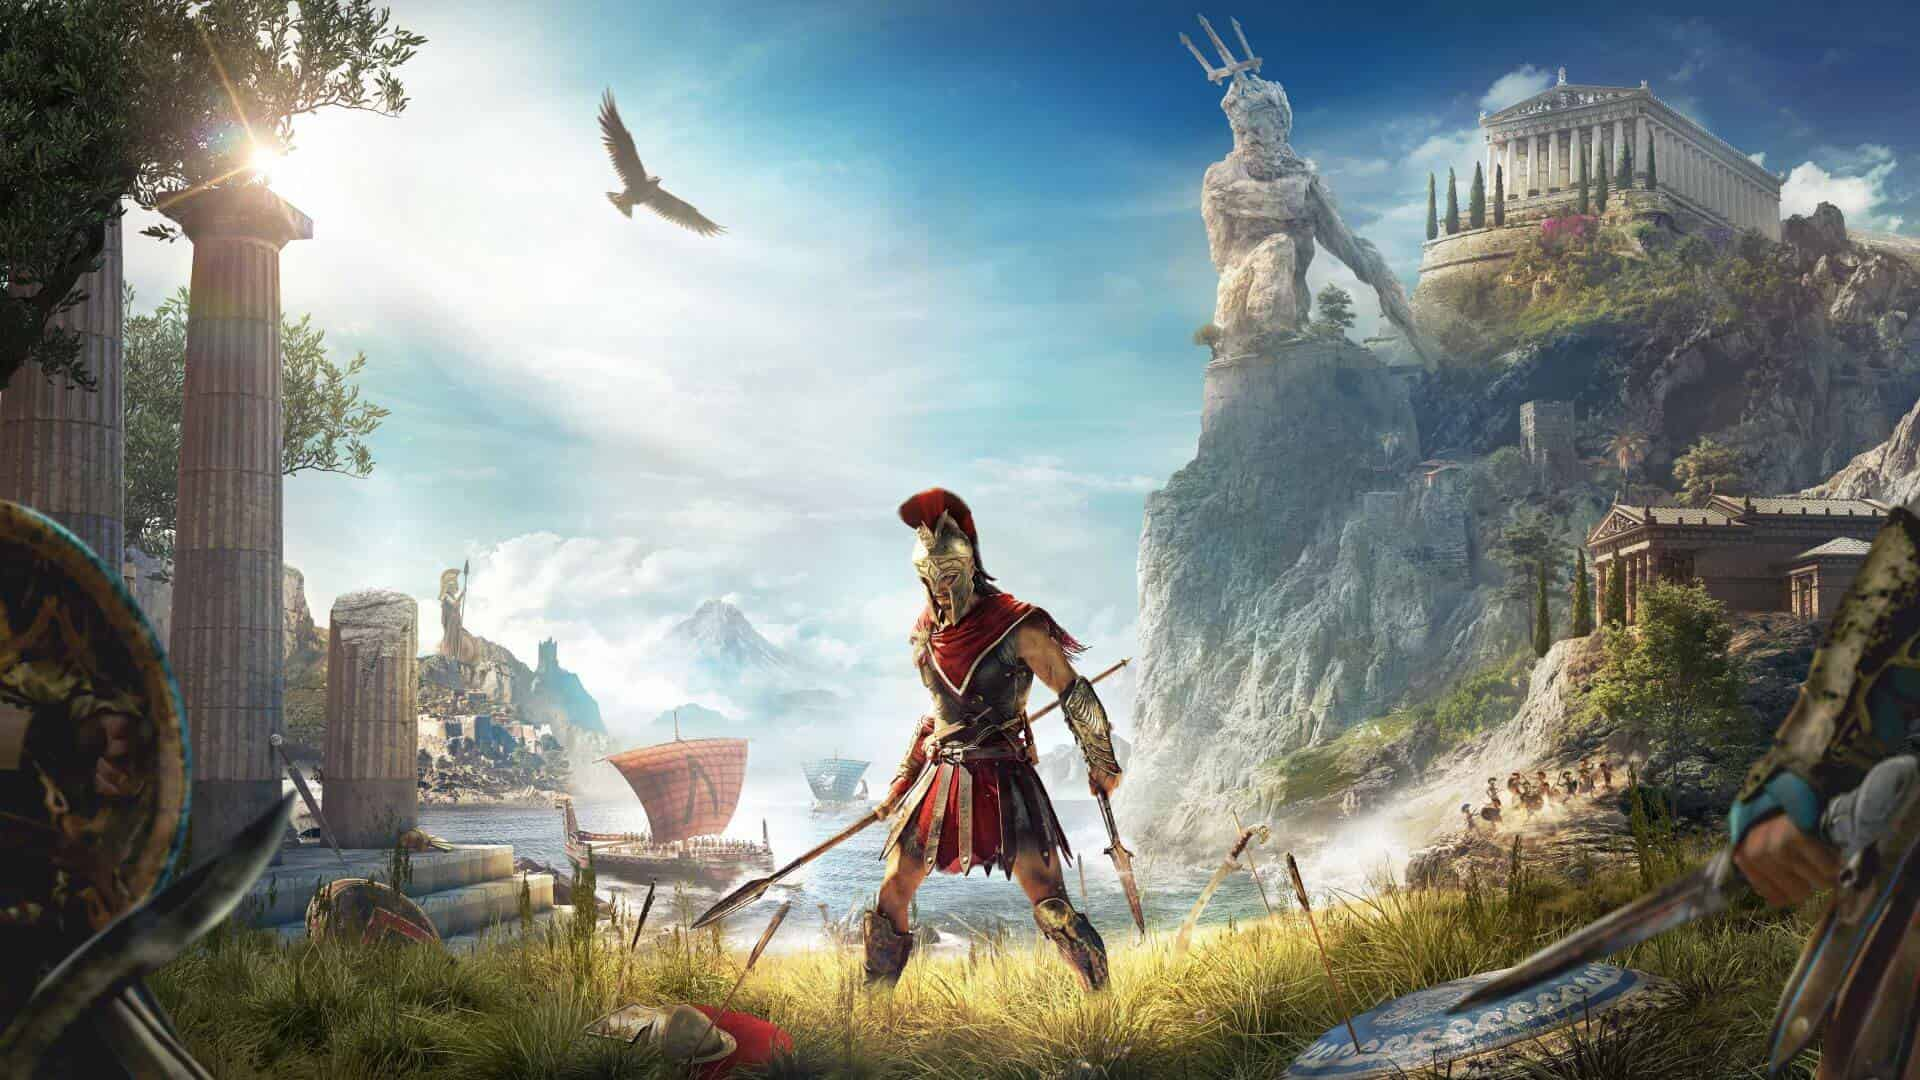 assassins creed odyssey PREVIEW SCREENSHOT 01 1 - بازی Assassin's Creed Odyssey مخصوص PS4